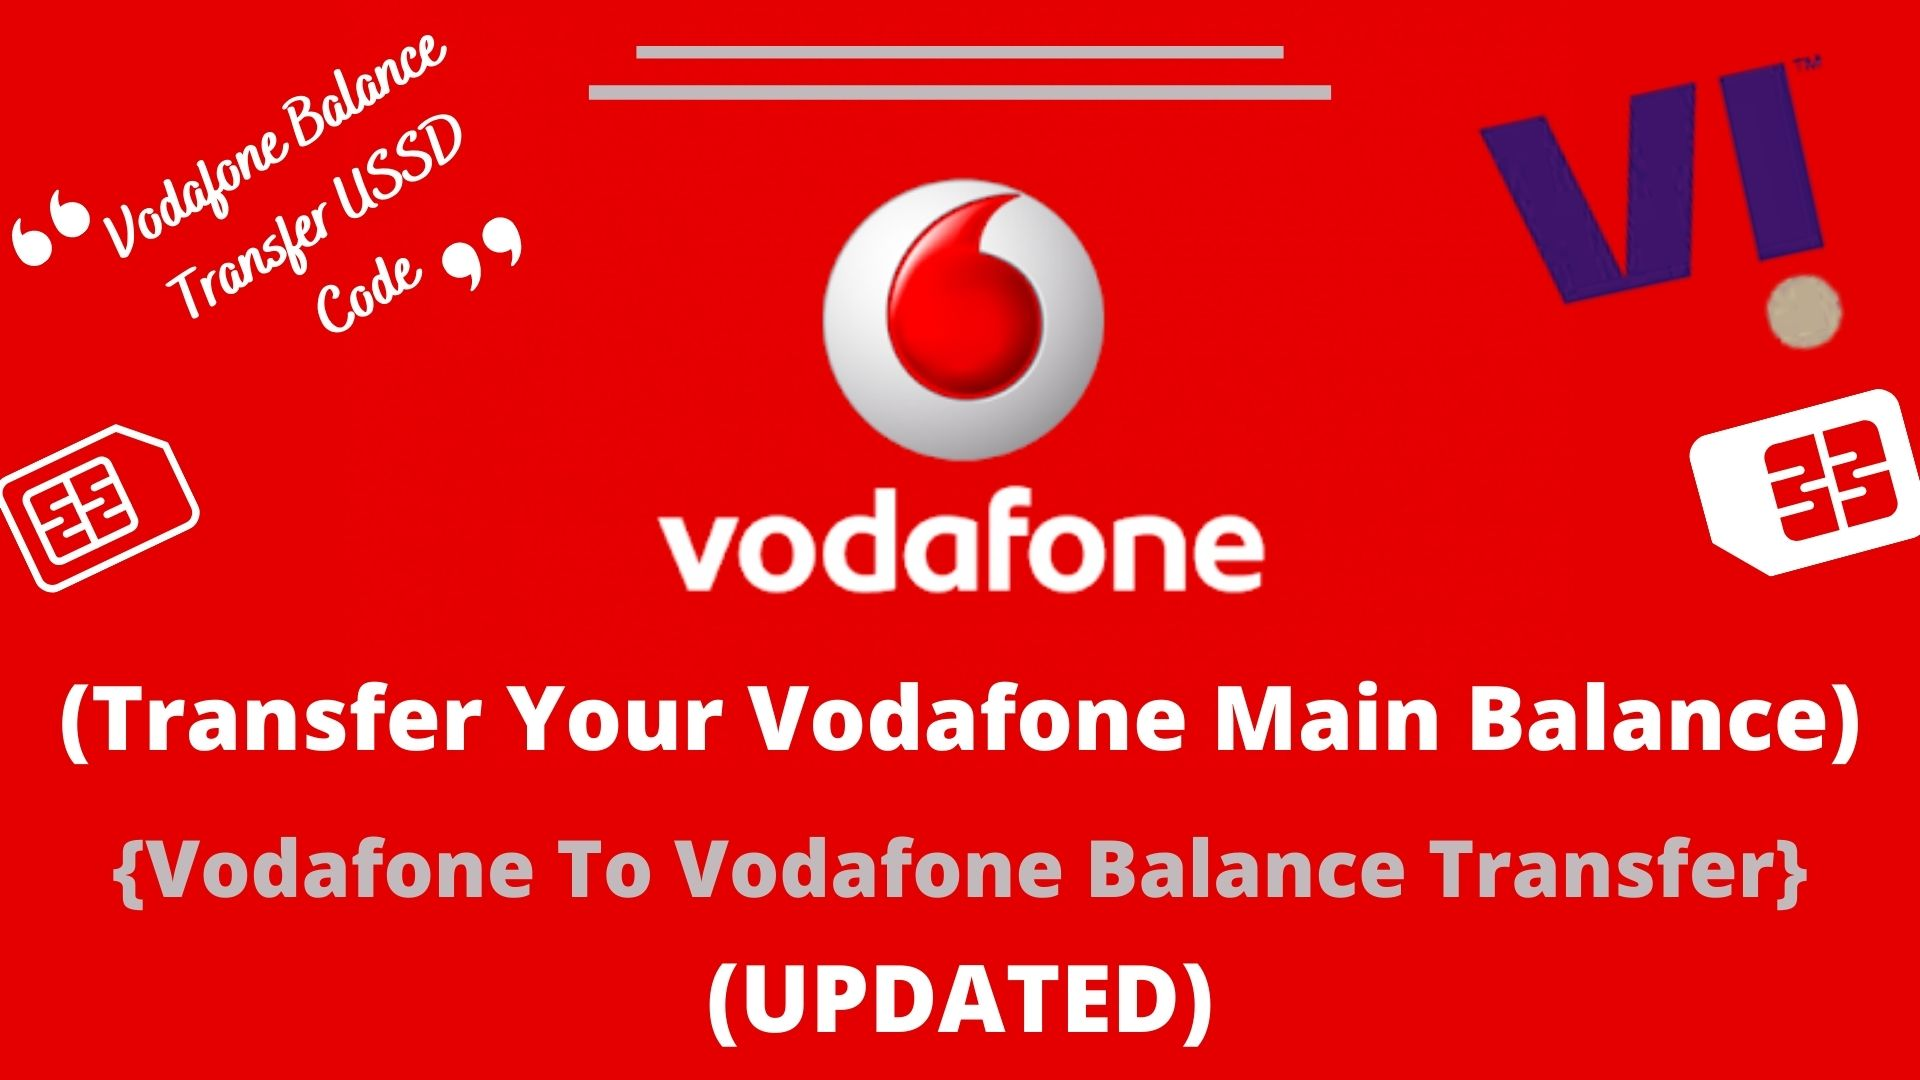 Transfer Your Vodafone Main Balance